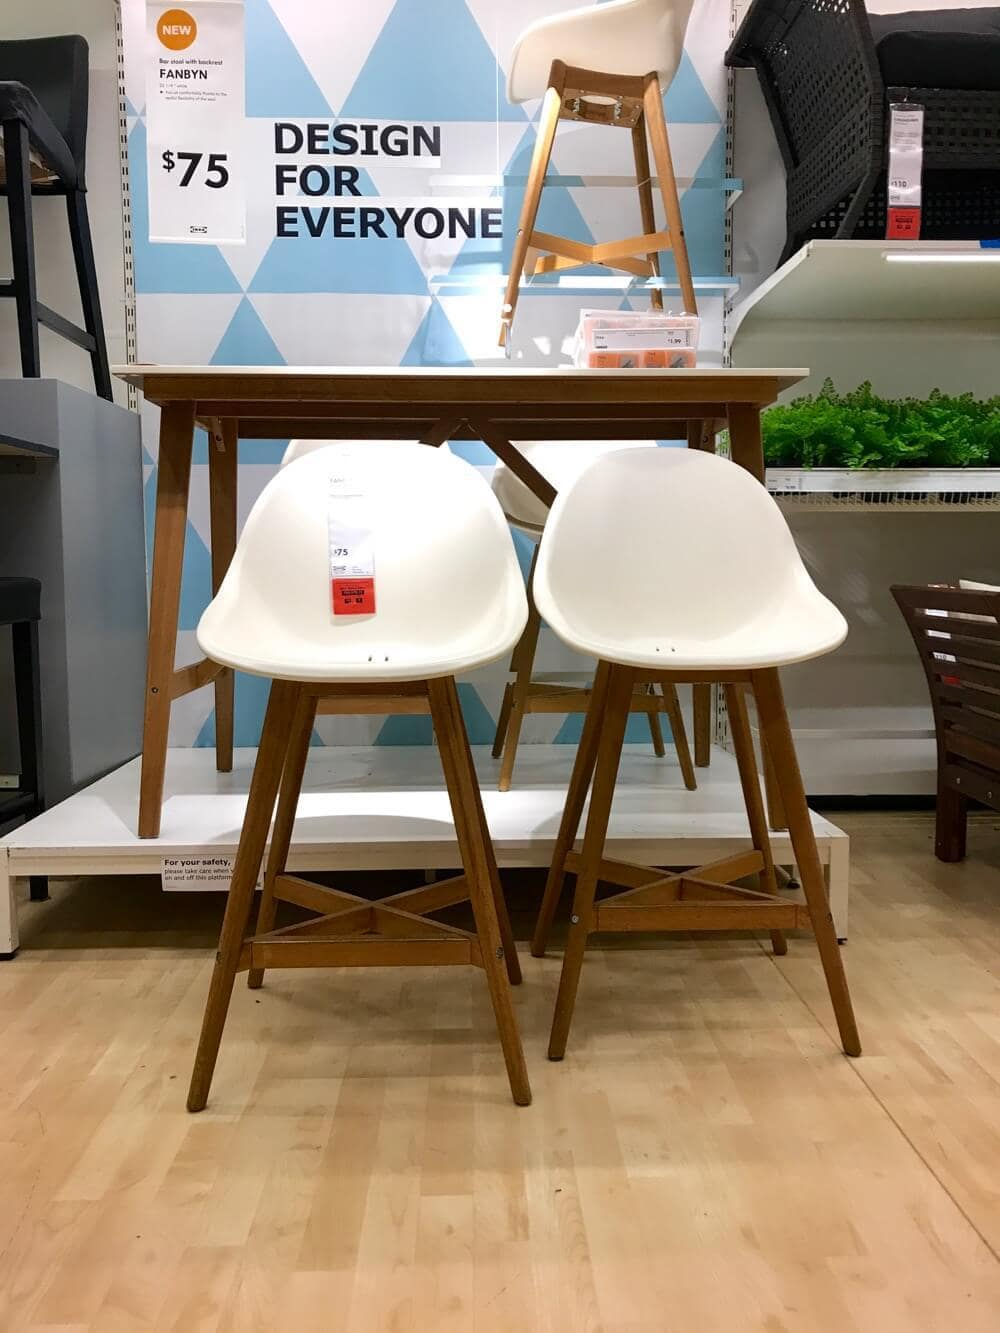 All of the fun new products available at IKEA this summer, along with a ton of inspiration for projects to try and things you should pick up the next time you're in IKEA. Who knew you could get so much inspiration just from a little window shopping?!